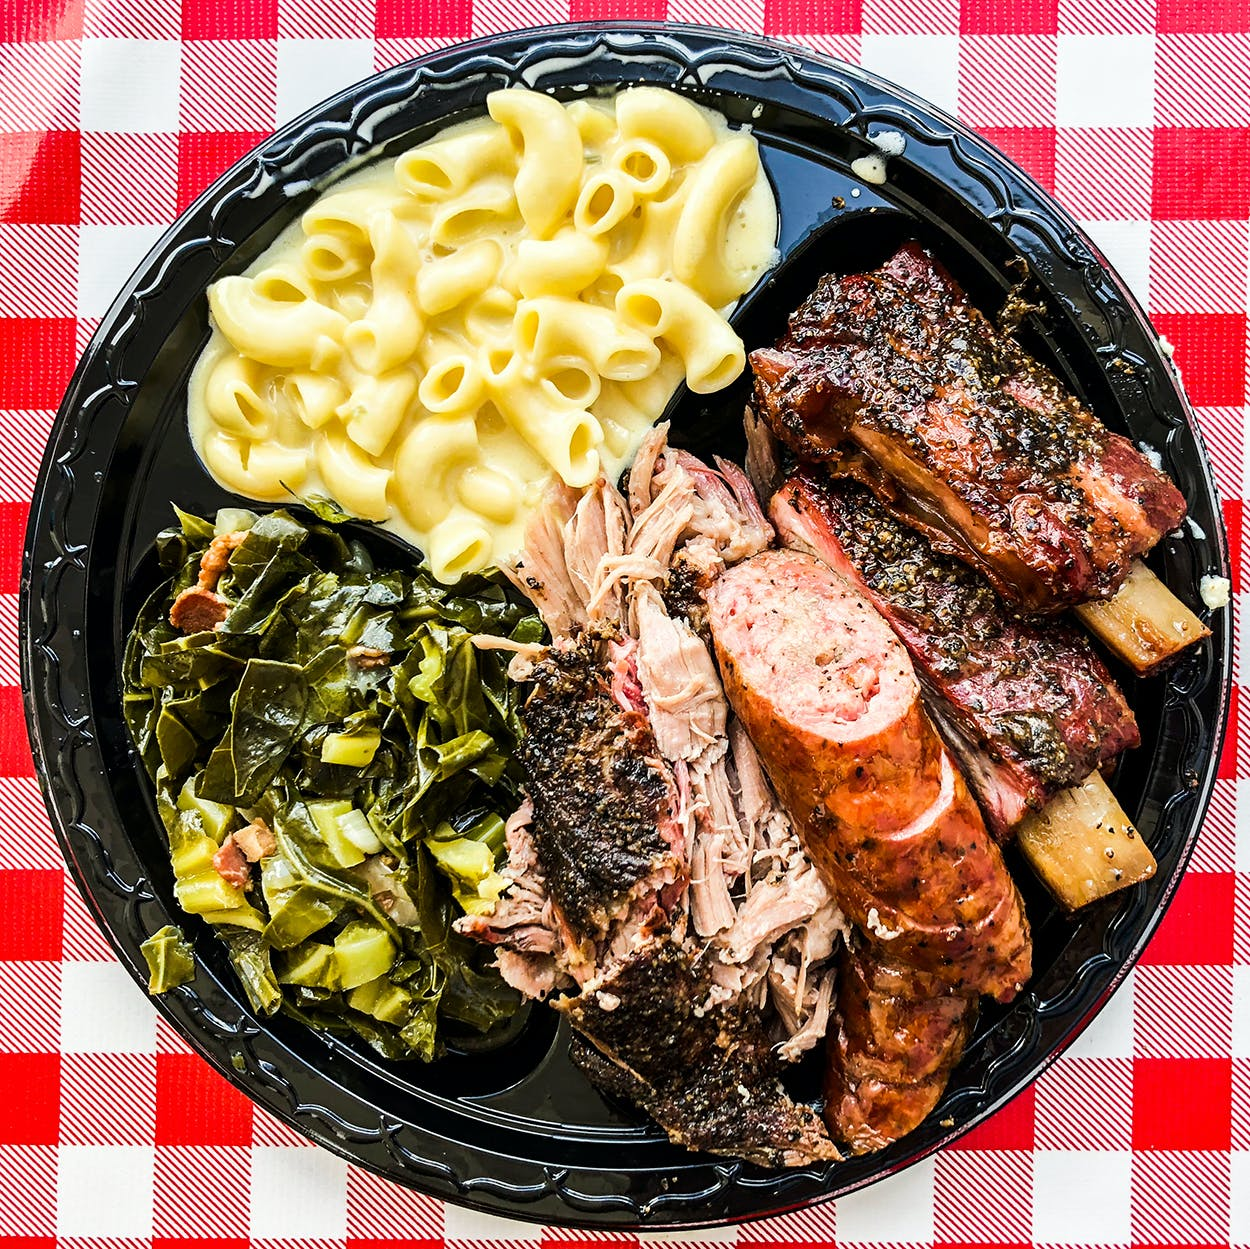 Collard greens with bacon and creamy mac and cheese served alongside pork shoulder, sausage and pork ribs from LJ's BBQ in Brenham.